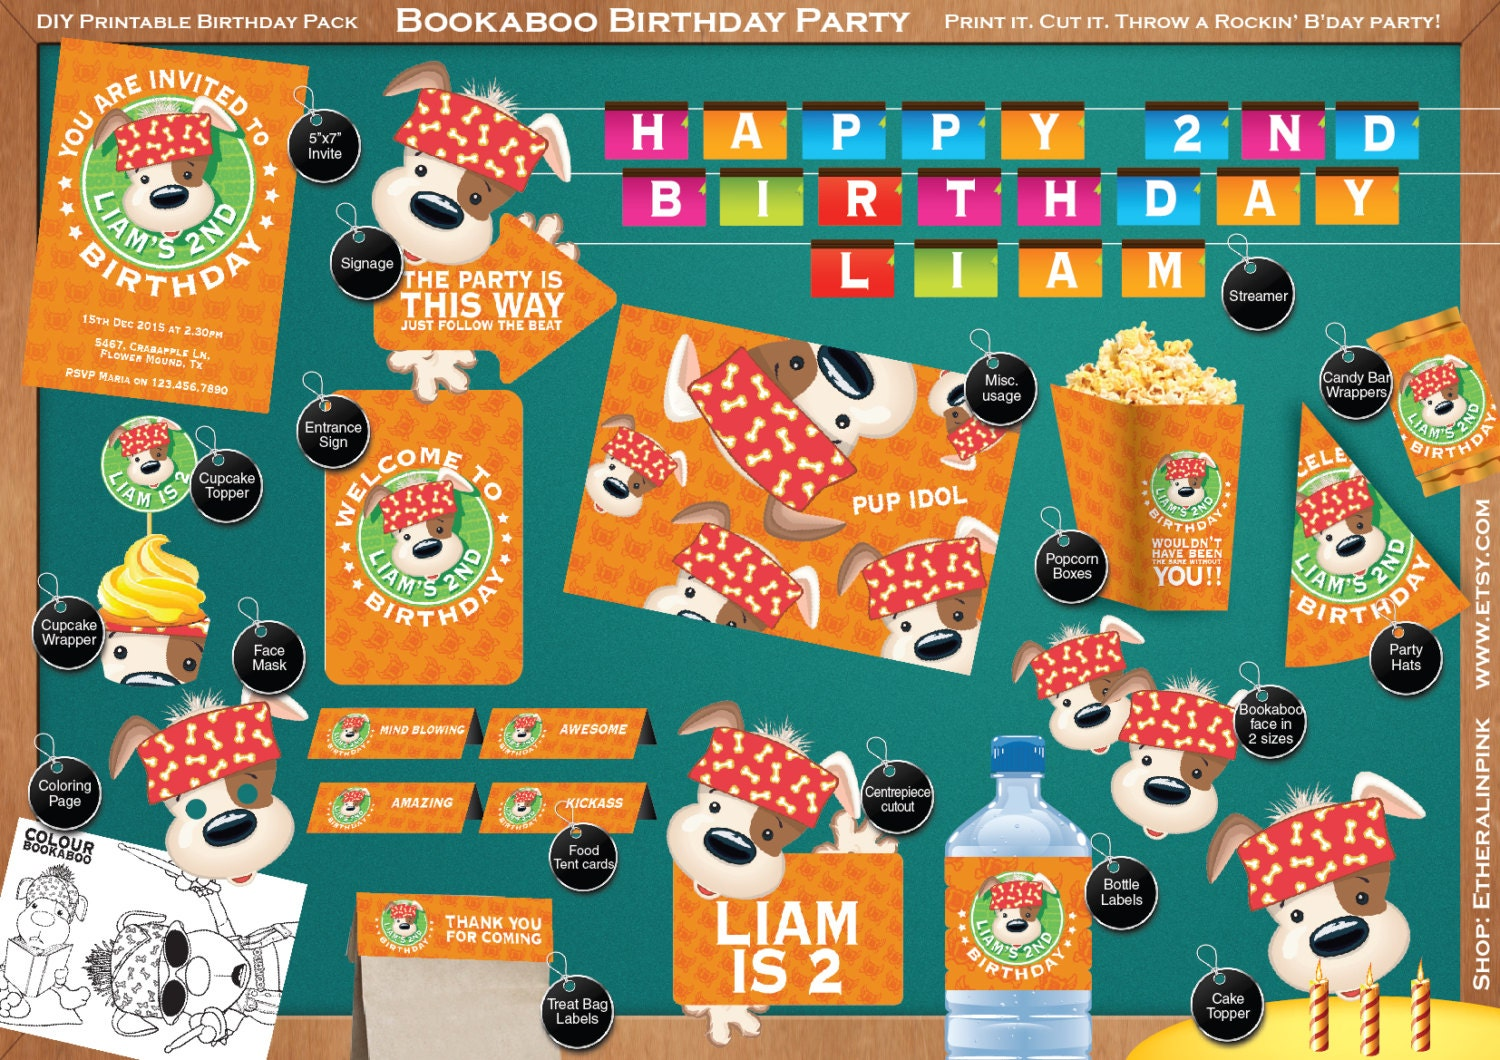 Bookaboo Personalized Printable Birthday Party Pack Diy Etsy